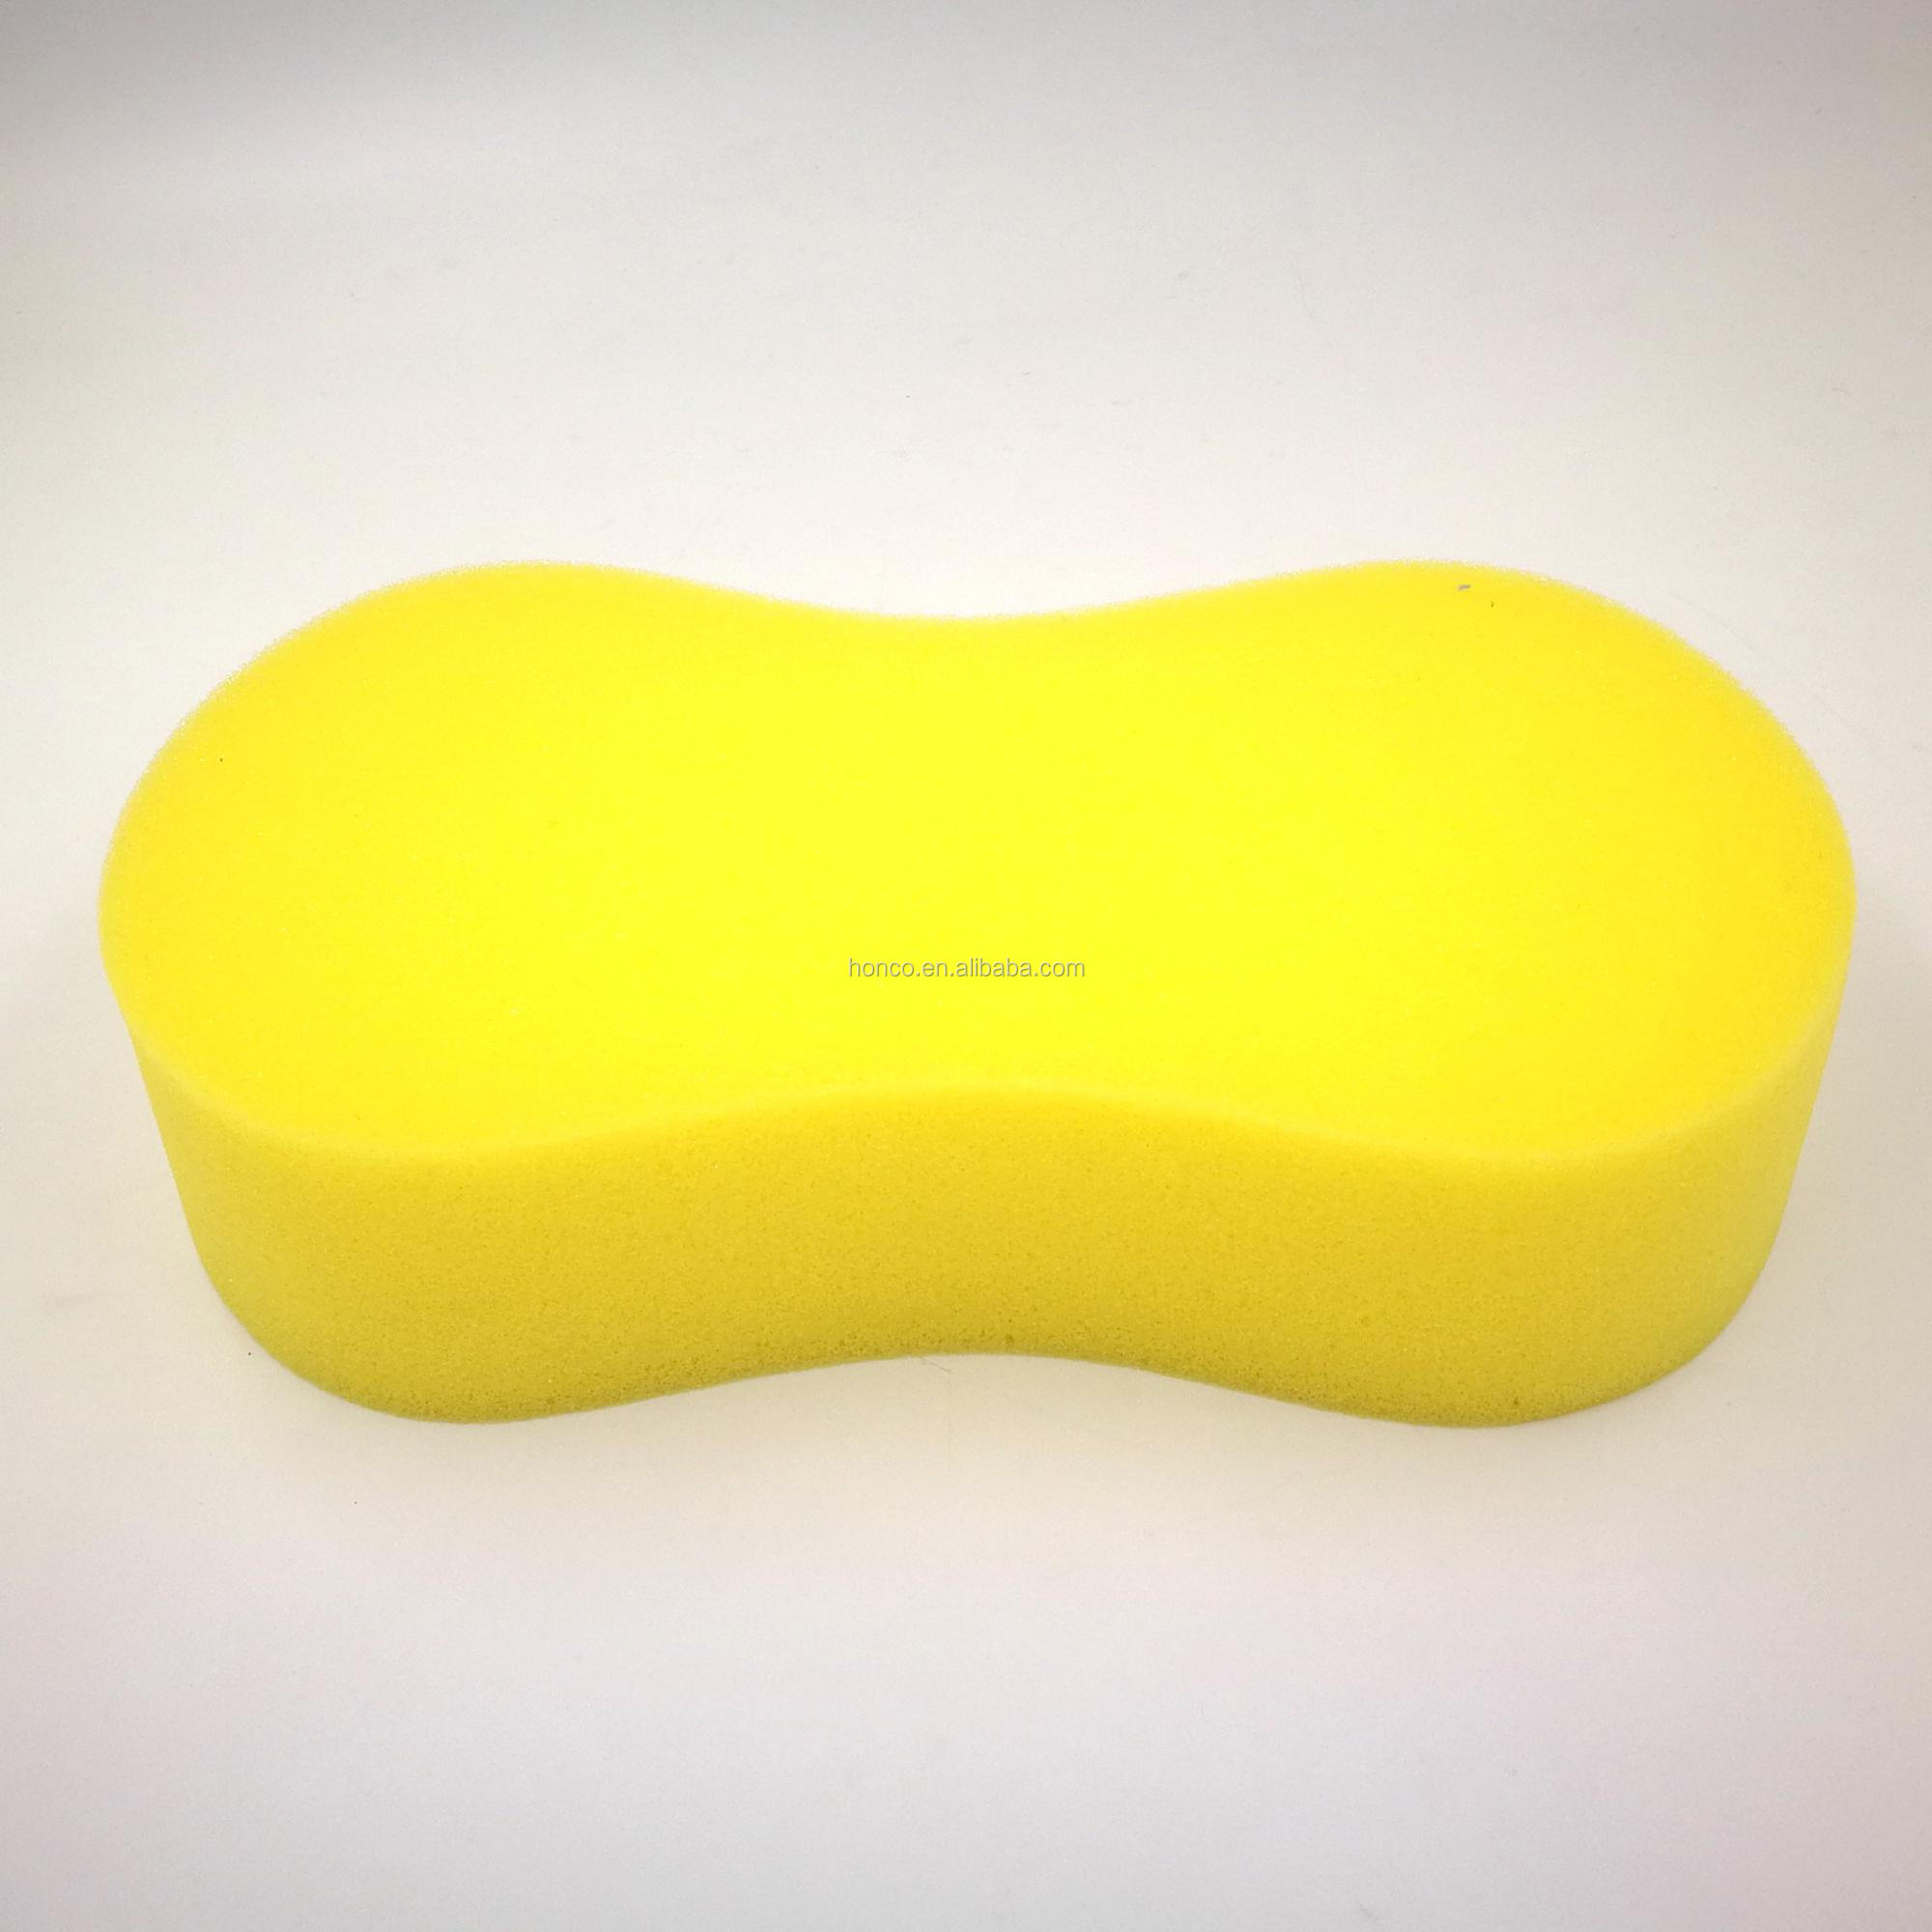 All Purpose Super Absorbent Jumbo Cleaning Sponge 8 Shape Yellow BSCI / SEDEX Audited factory supplying